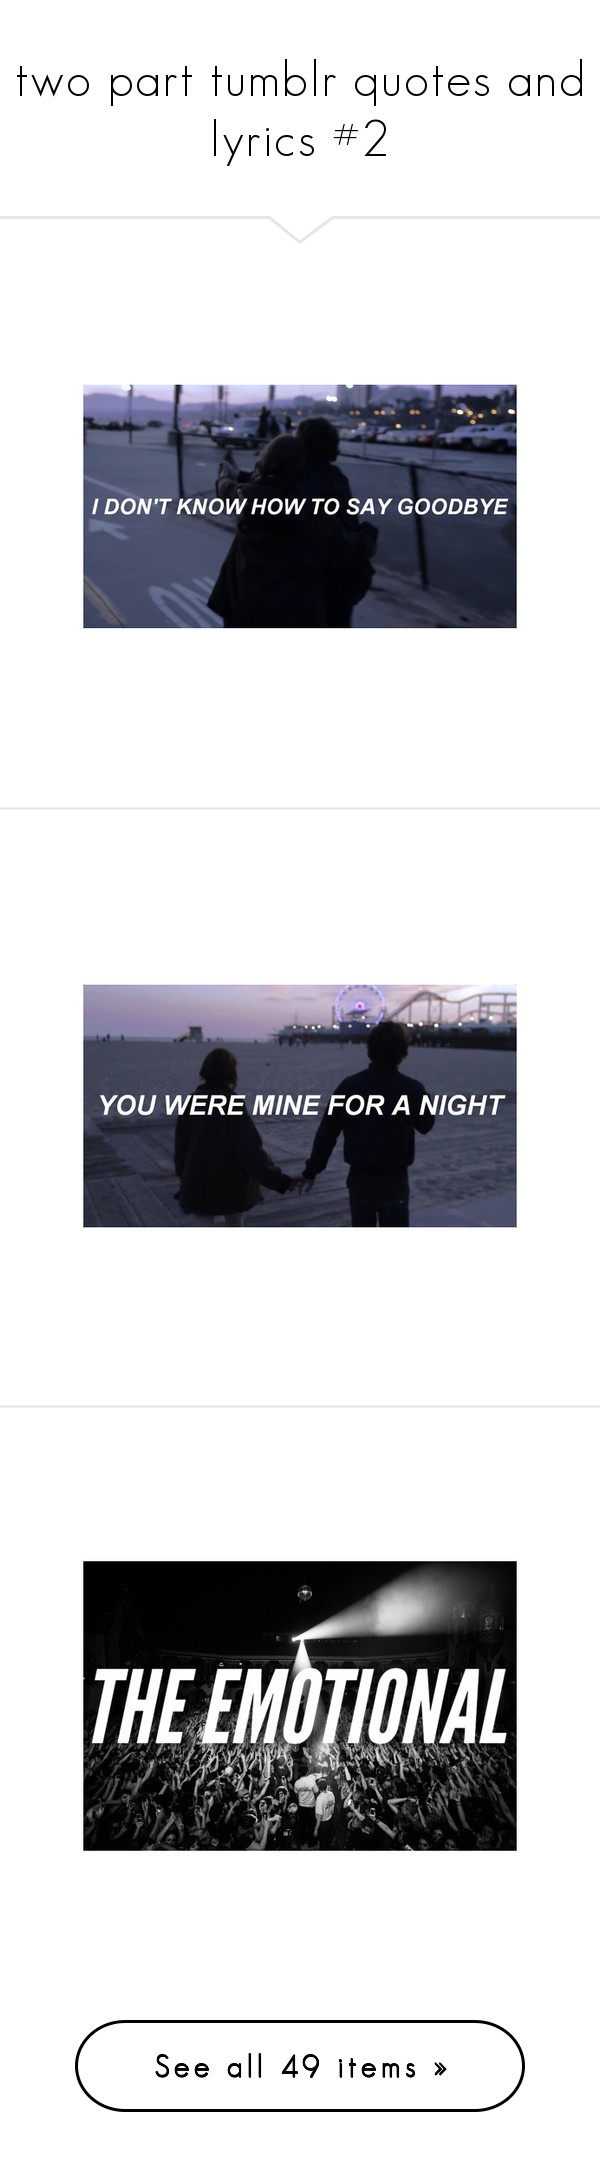 """""""two part tumblr quotes and lyrics #2"""" by xxjust-a-dreamxx ❤ liked on Polyvore featuring pictures, fillers // backgrounds, text, aesthetic, backgrounds, quotes, filler, phrase, saying and 5sos"""